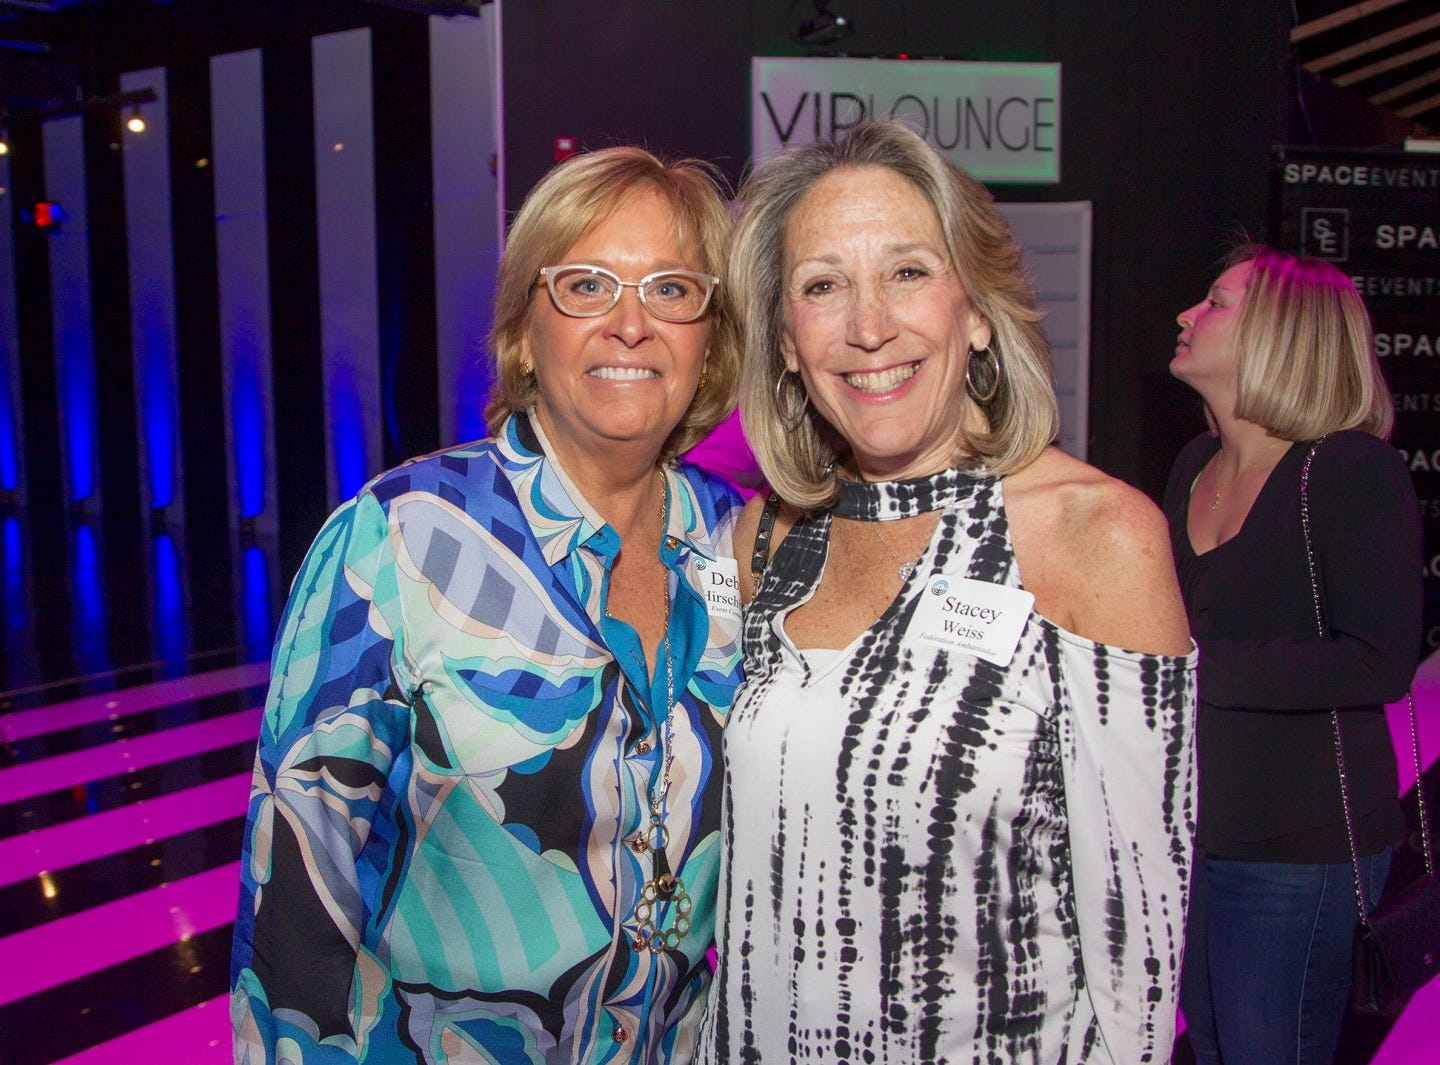 Debra Hirschberg, Stacy Weiss. Jewish Federation of Northern New Jersey held its first Girl's Night Out dance party at Space in Englewood. 01/24/2019